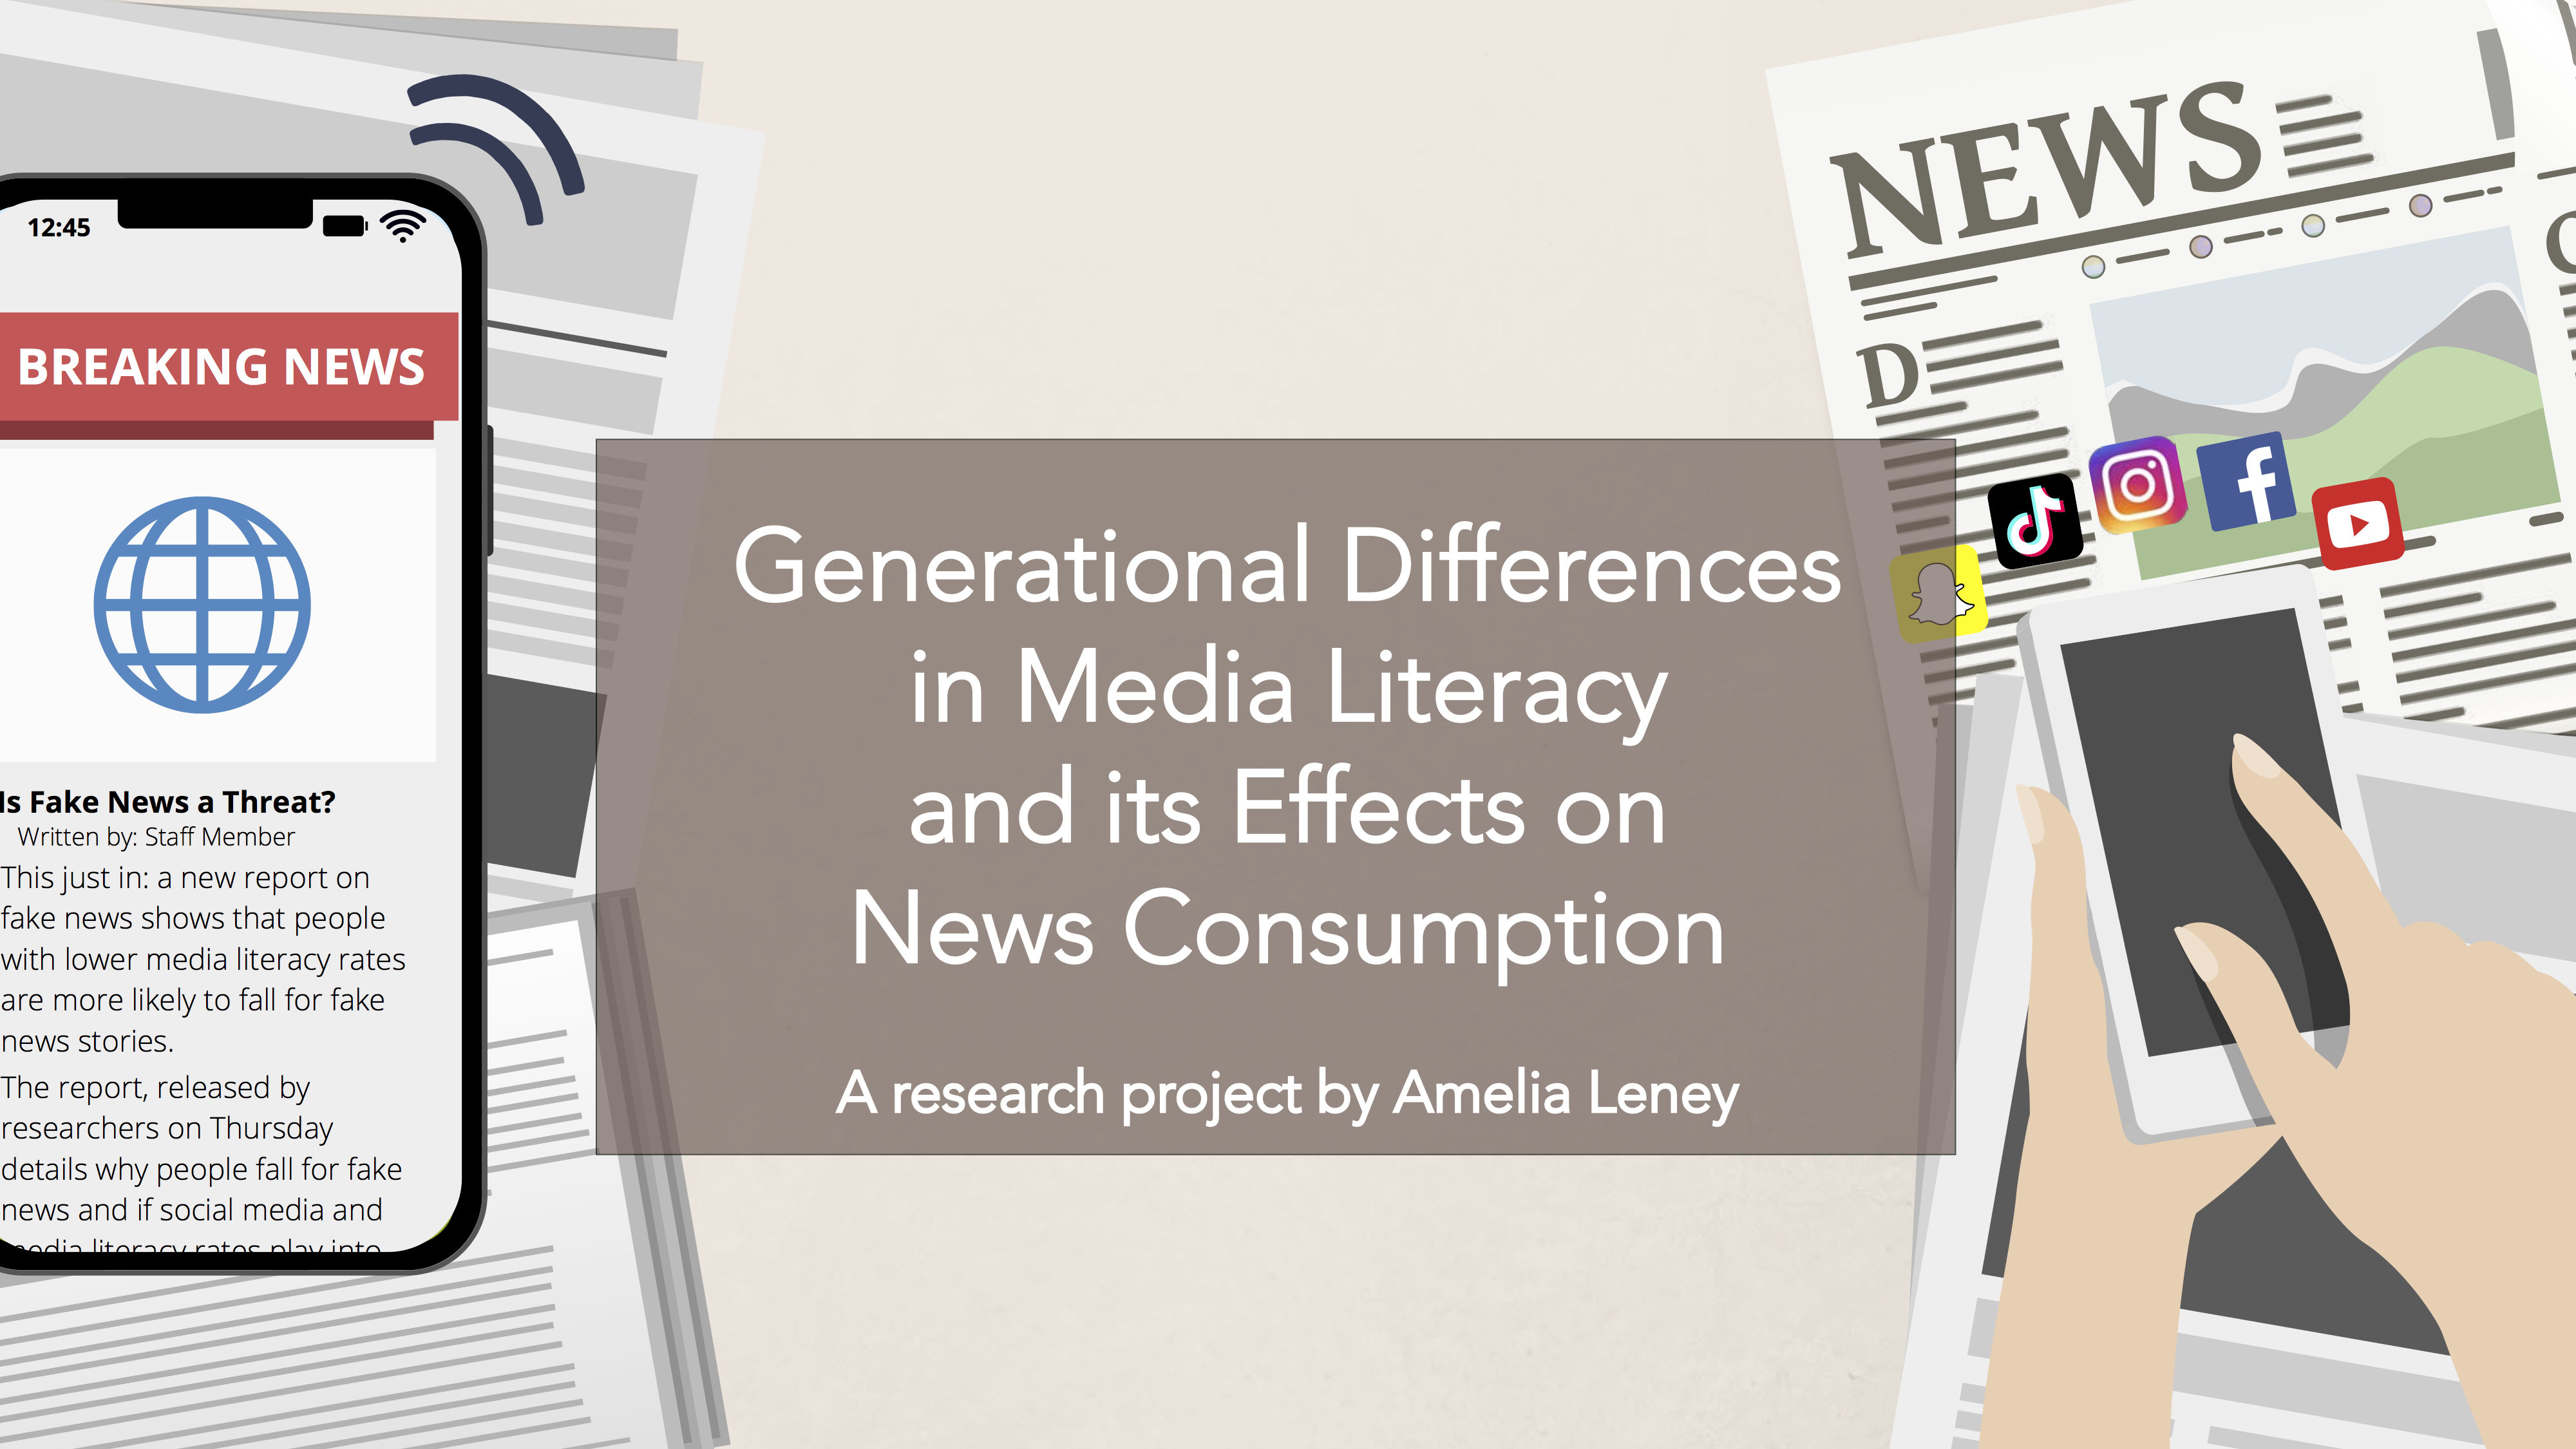 Generational Differences in Media Literacy and its Effects on News Consumption